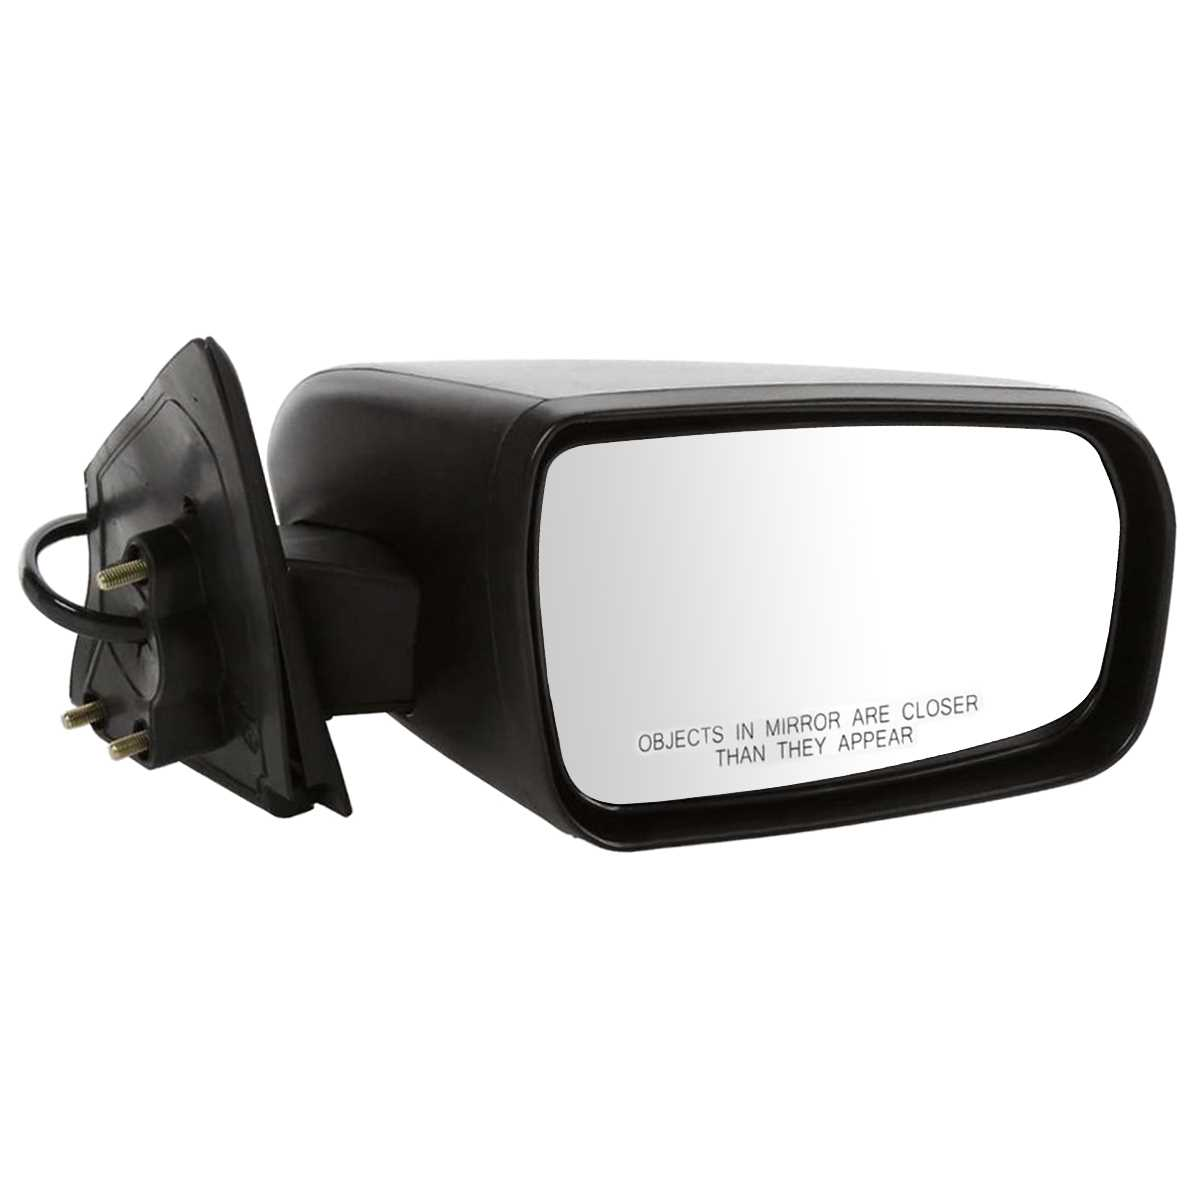 Mitsubishi Side Mirror Replacement: NEW ELECTRIC POWER PASSENGER SIDE VIEW MIRROR FOR